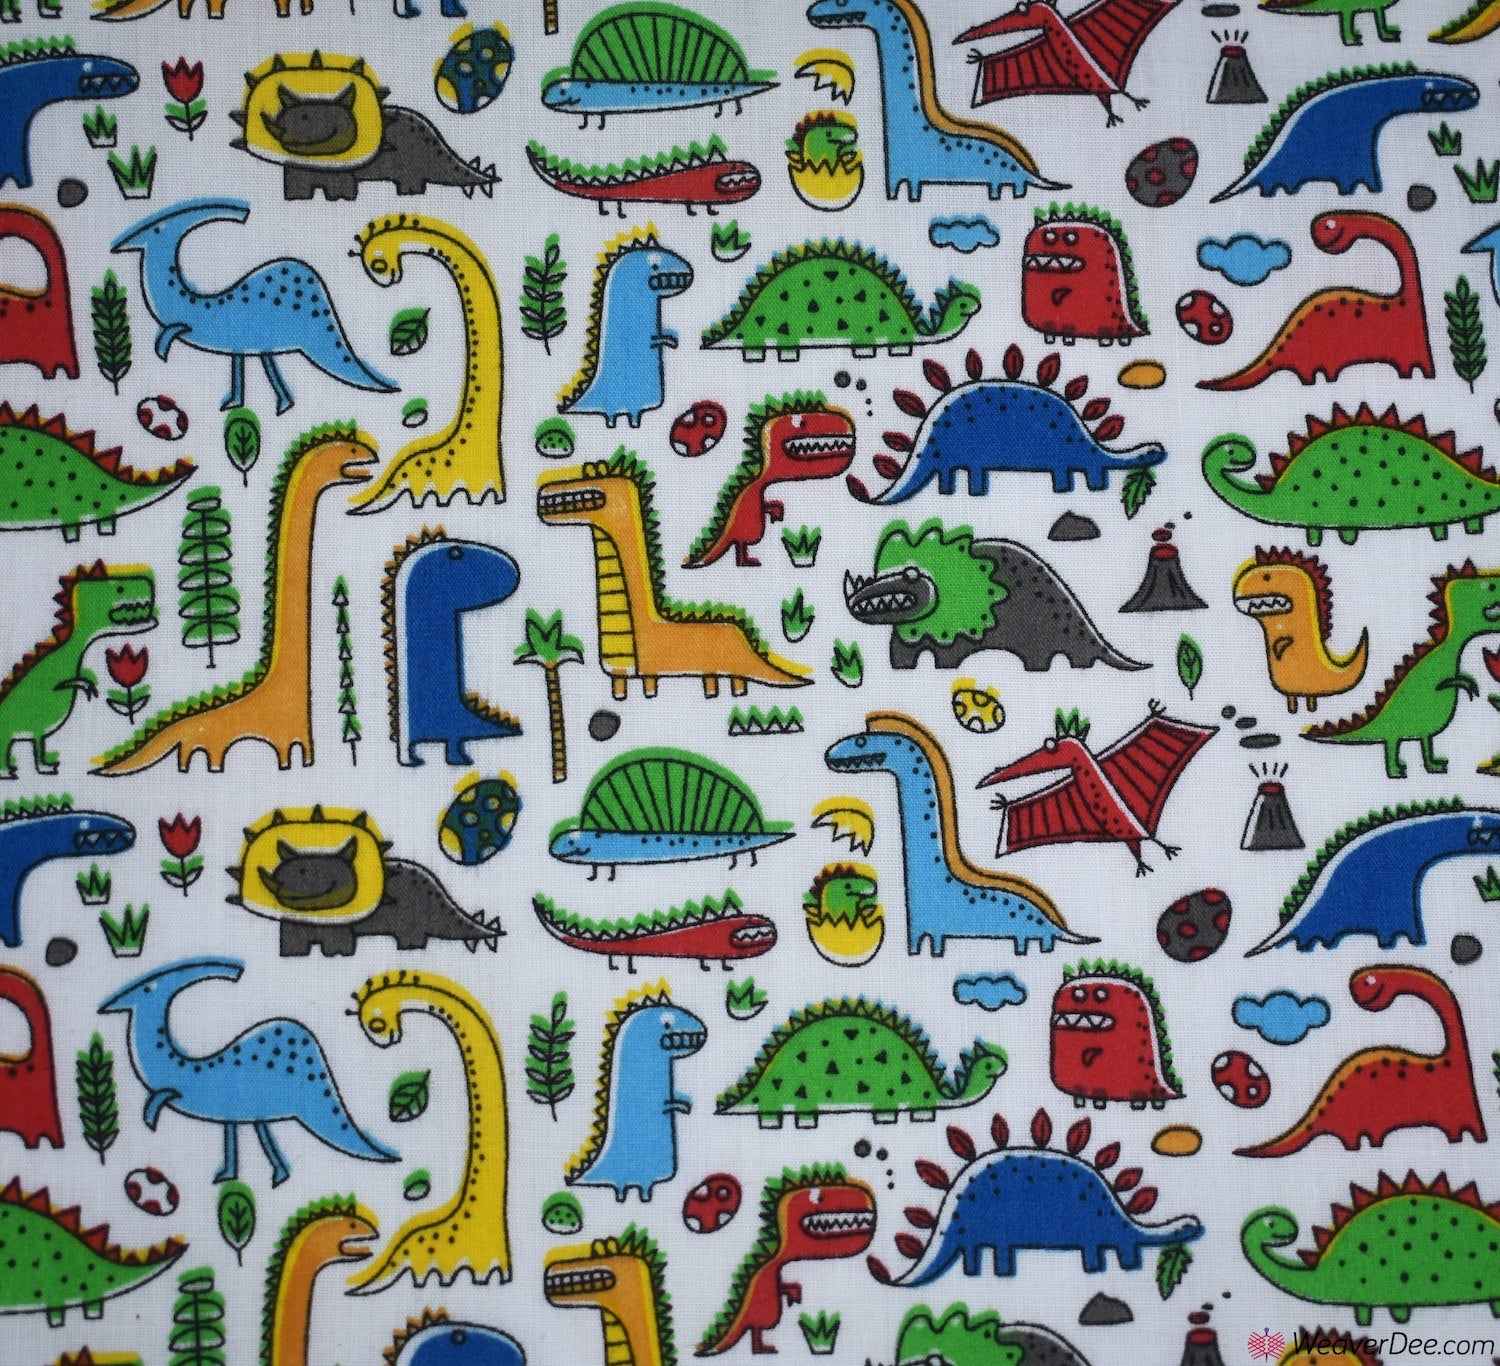 Dino Dinosaur Colouring Fabric Cotton Fabric Dressmaking Quilting